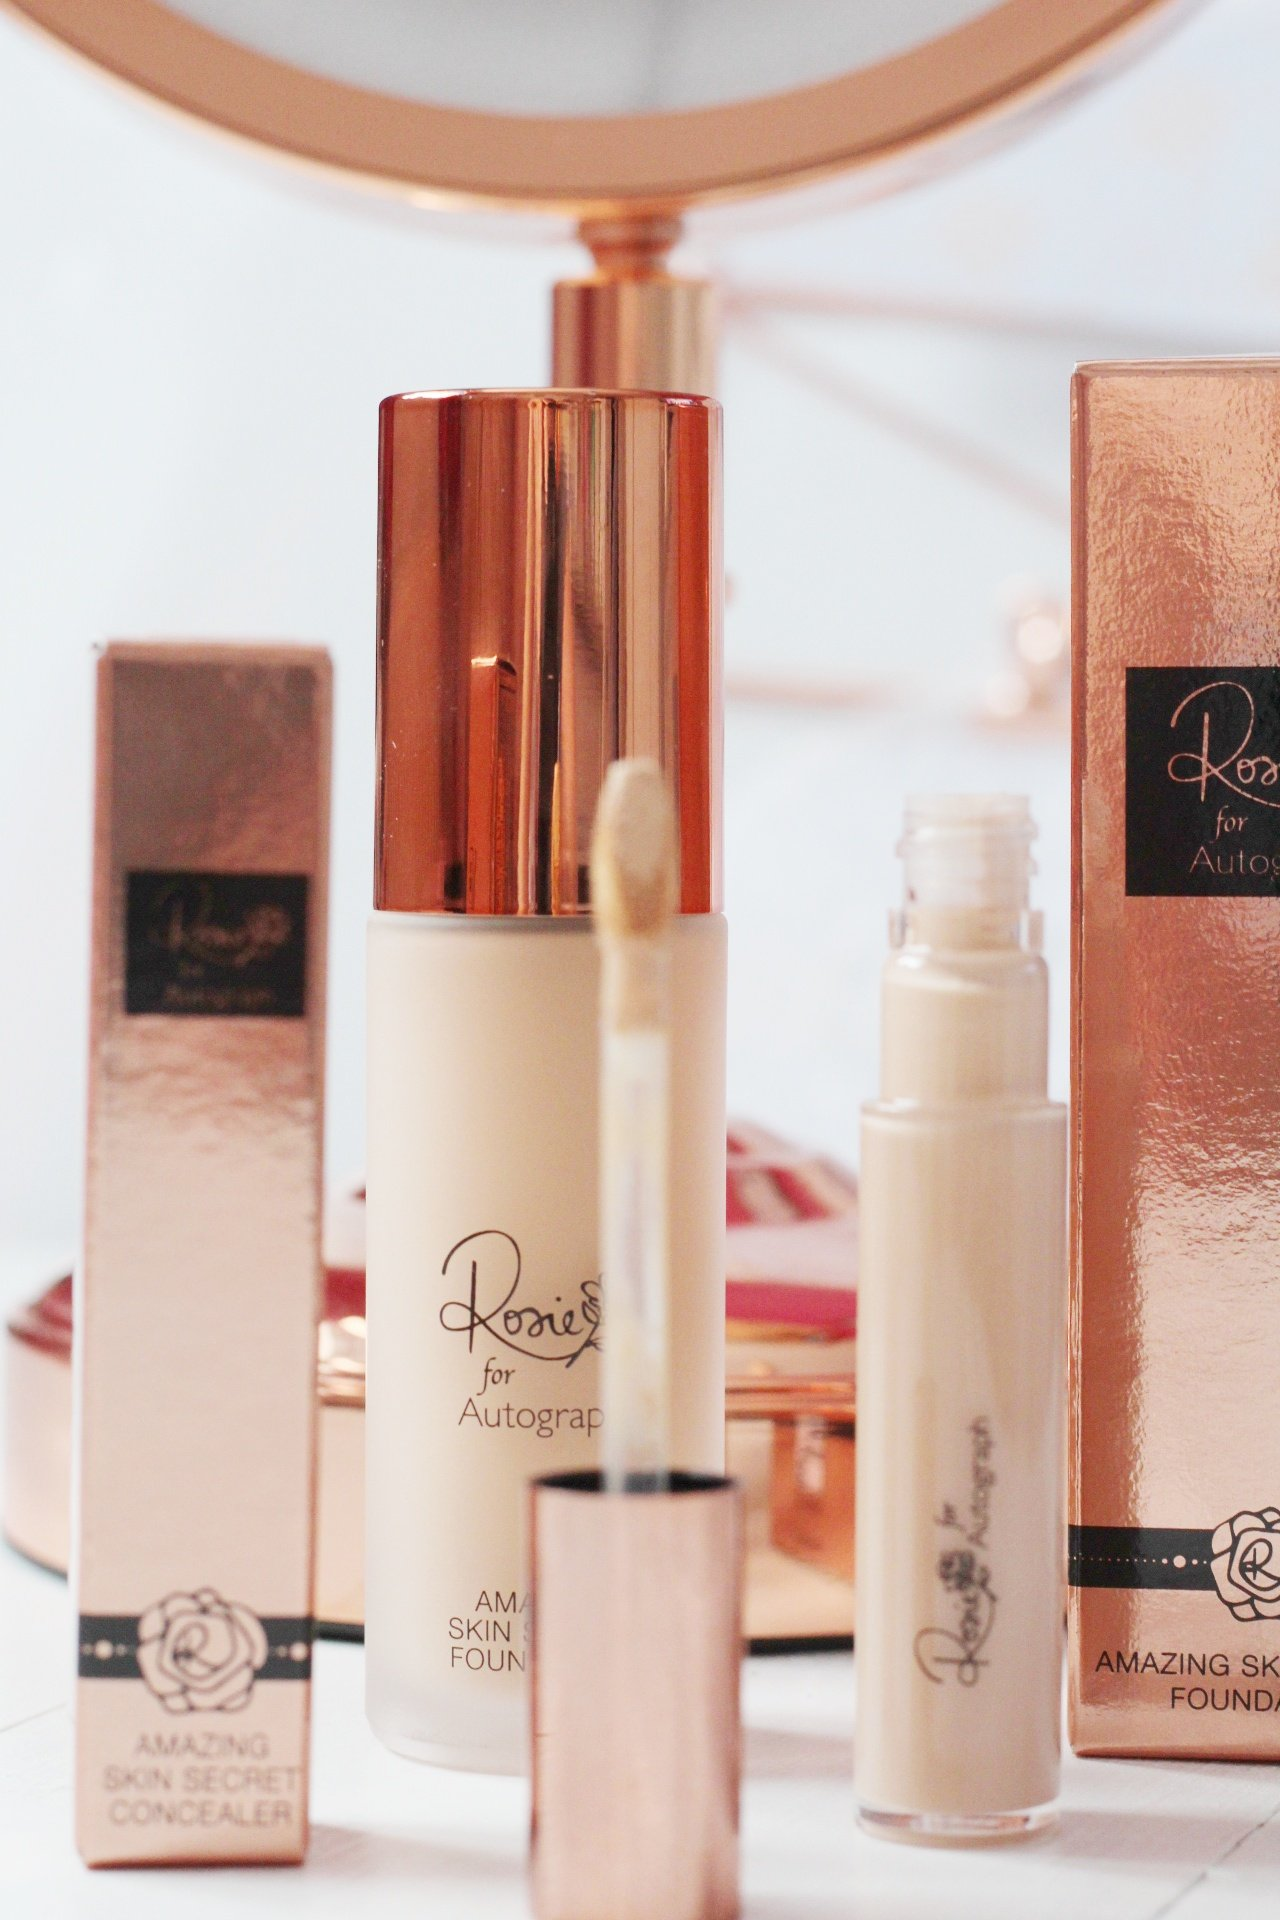 Rosie for Autograph at Marks and Spencer Makeup Review 8.jpeg